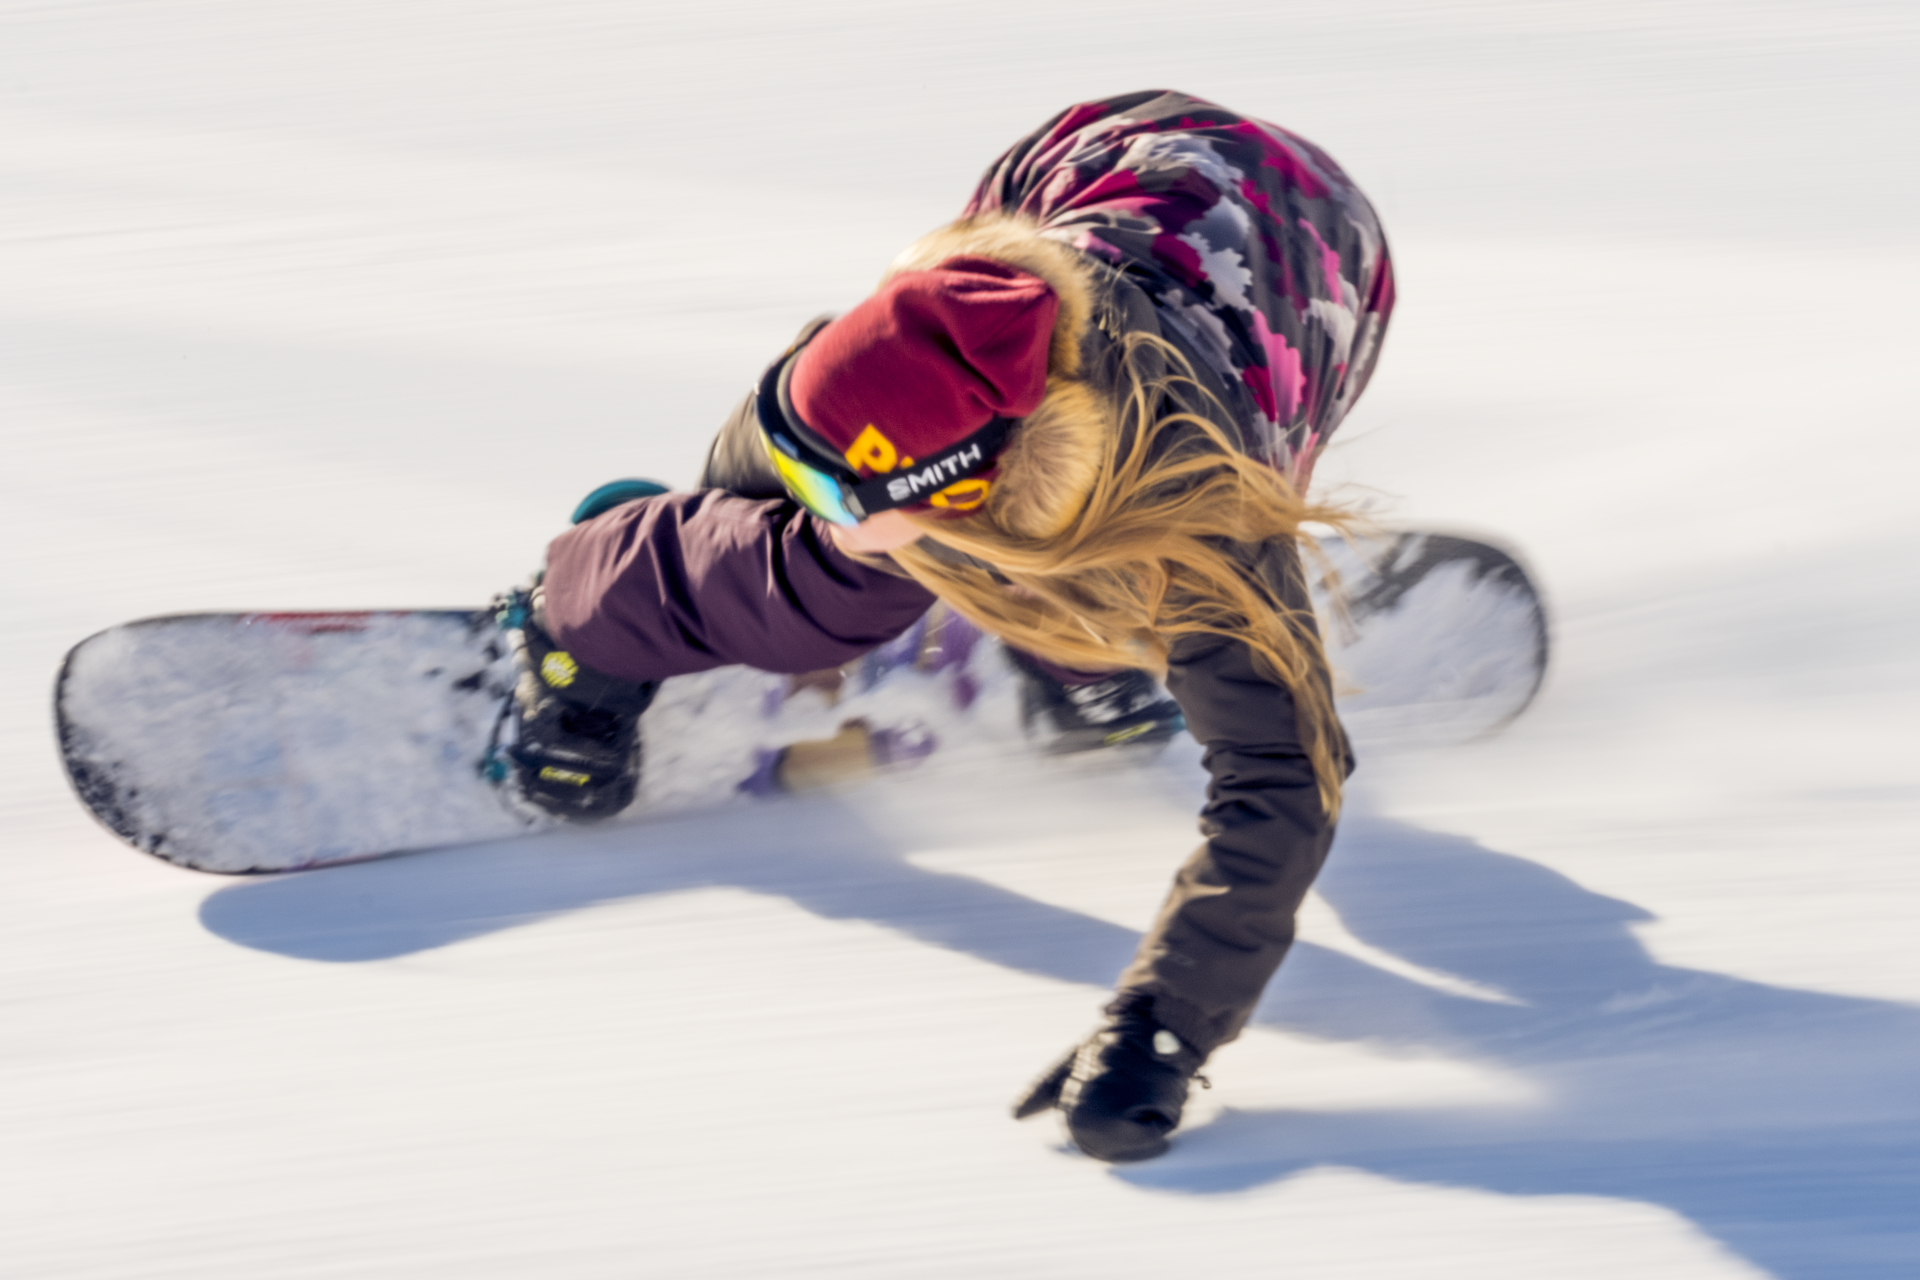 The best women's ski and snowboard gear for winter 2018/2019